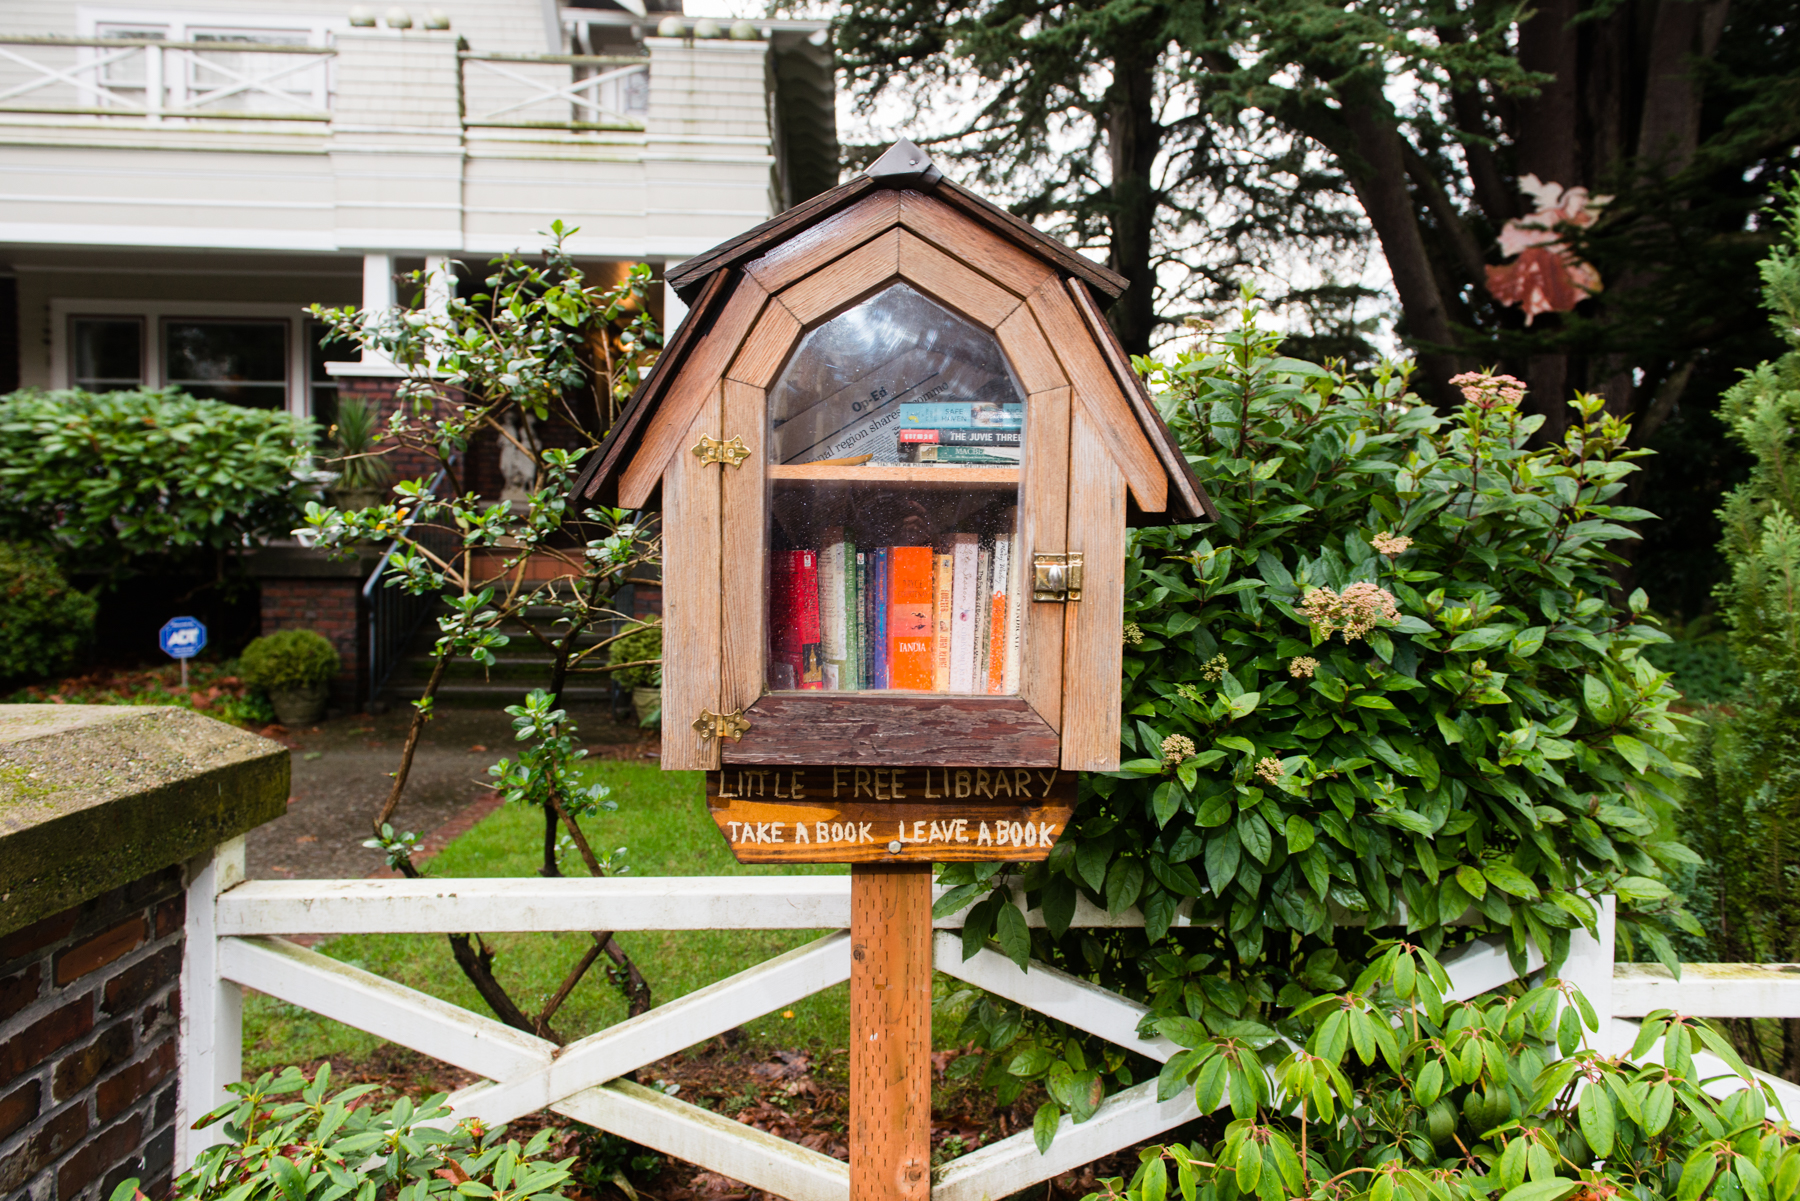 Have you ever seen a little free library? They're easy to miss if you're not looking closely, but once you've seen a couple, you'll begin spotting them everywhere. Queen Anne alone is home to over 30! Seattle is a big book-buying town, so it should come as no surprise that this non-profit operation is extremely popular. The cardinal rule is simple: take a book, return a book. Little Free Library's mission is to offer and facilitate book access for communities throughout the world. According to their site, millions of books are exchanged around the world annually.  The magic of LFL is that no two libraries are quite the same. Click on for our roundup of Seattle's cutest Little Free Library book hubs. (Image: Chona Kasinger / Seattle Refined)